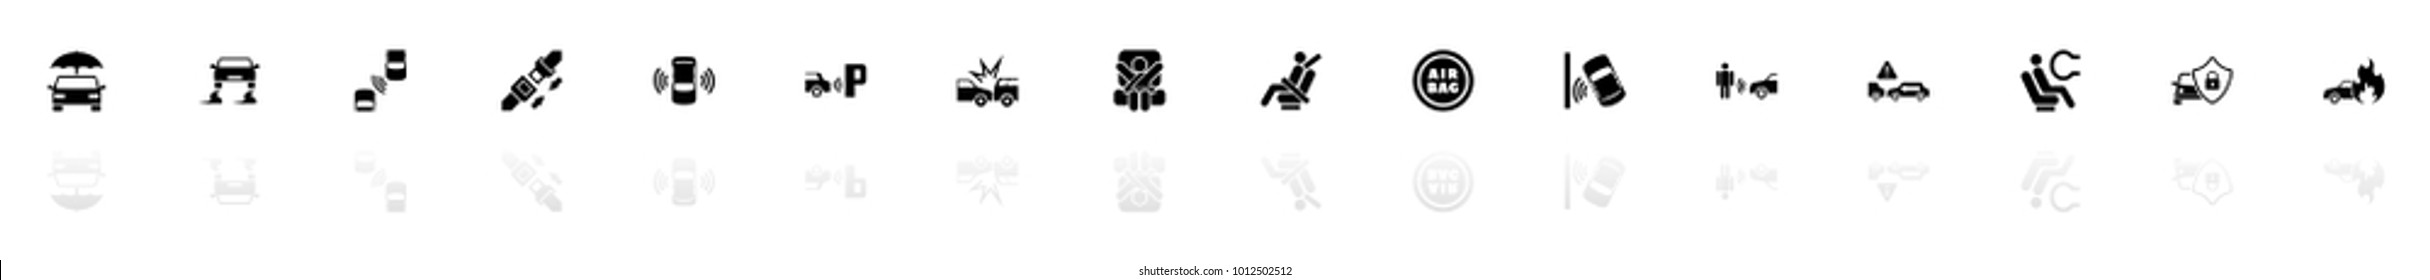 Auto Safety icons - Black horizontal Illustration symbol on White Background with a mirror Shadow reflection. Flat Vector Icon.